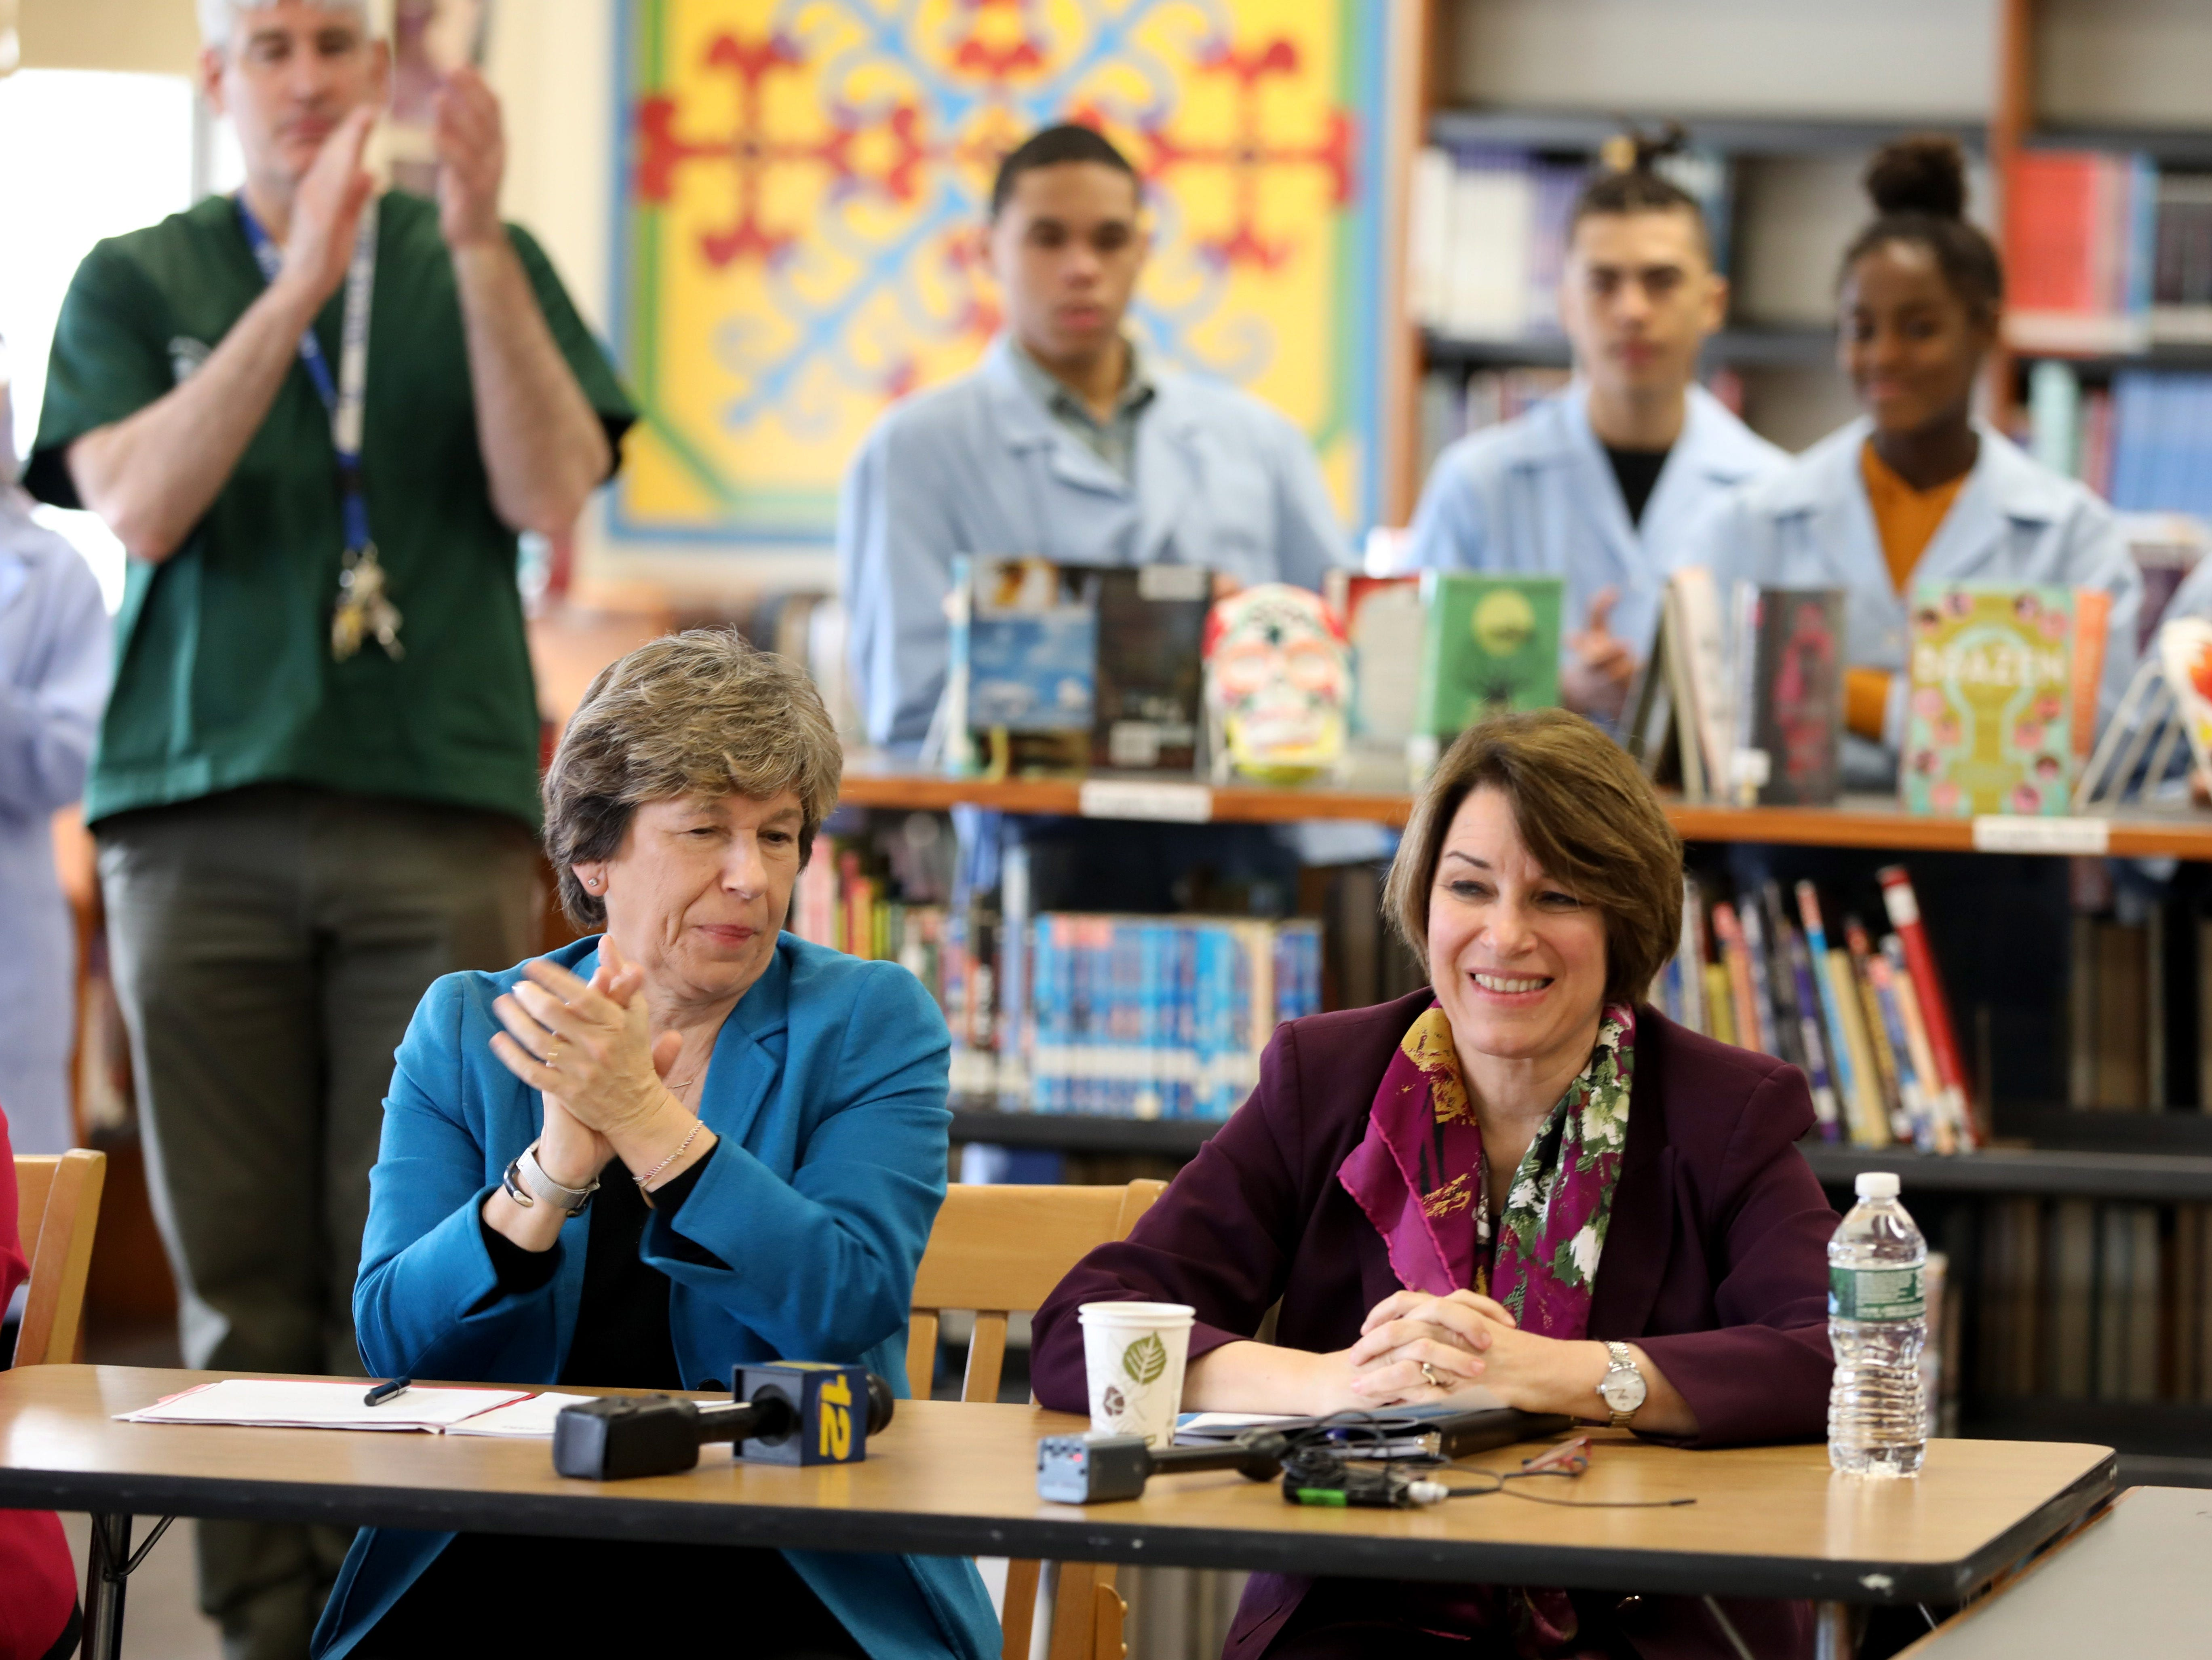 Randi Weingarten, left, the president of the American Federation of Teachers and U.S. Sen. Amy Klobuchar (D-Minn.), a Democratic presidential candidate, attend a school tour at Gorton High School in Yonkers, May 10, 2019.